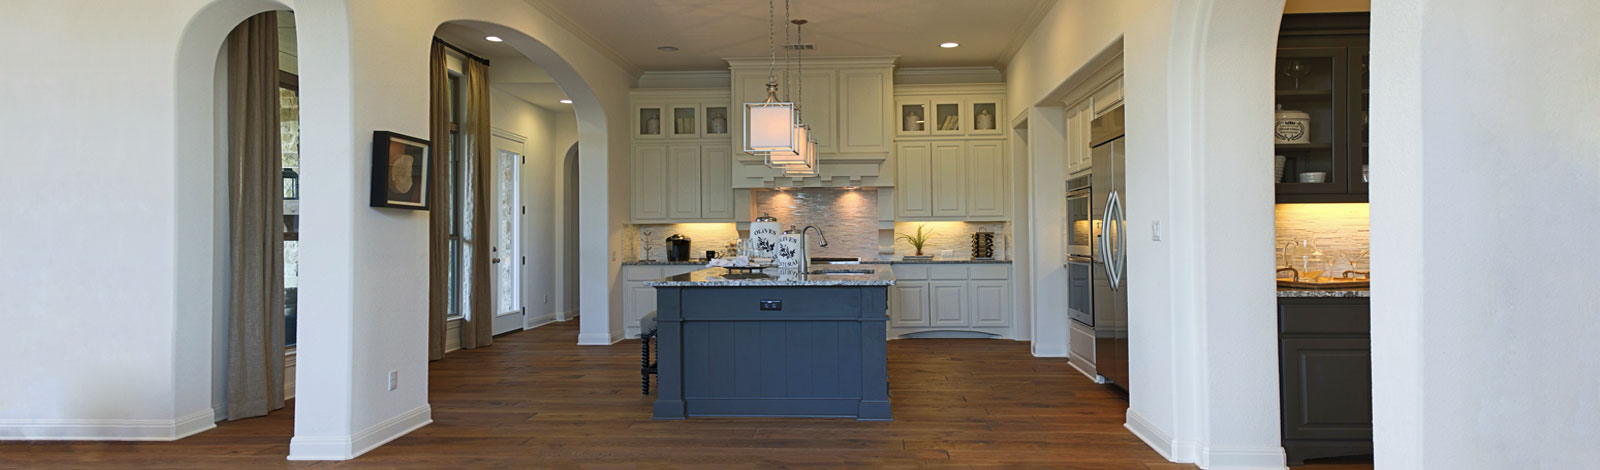 Burrows Cabinets' kitchen in bone with umber island